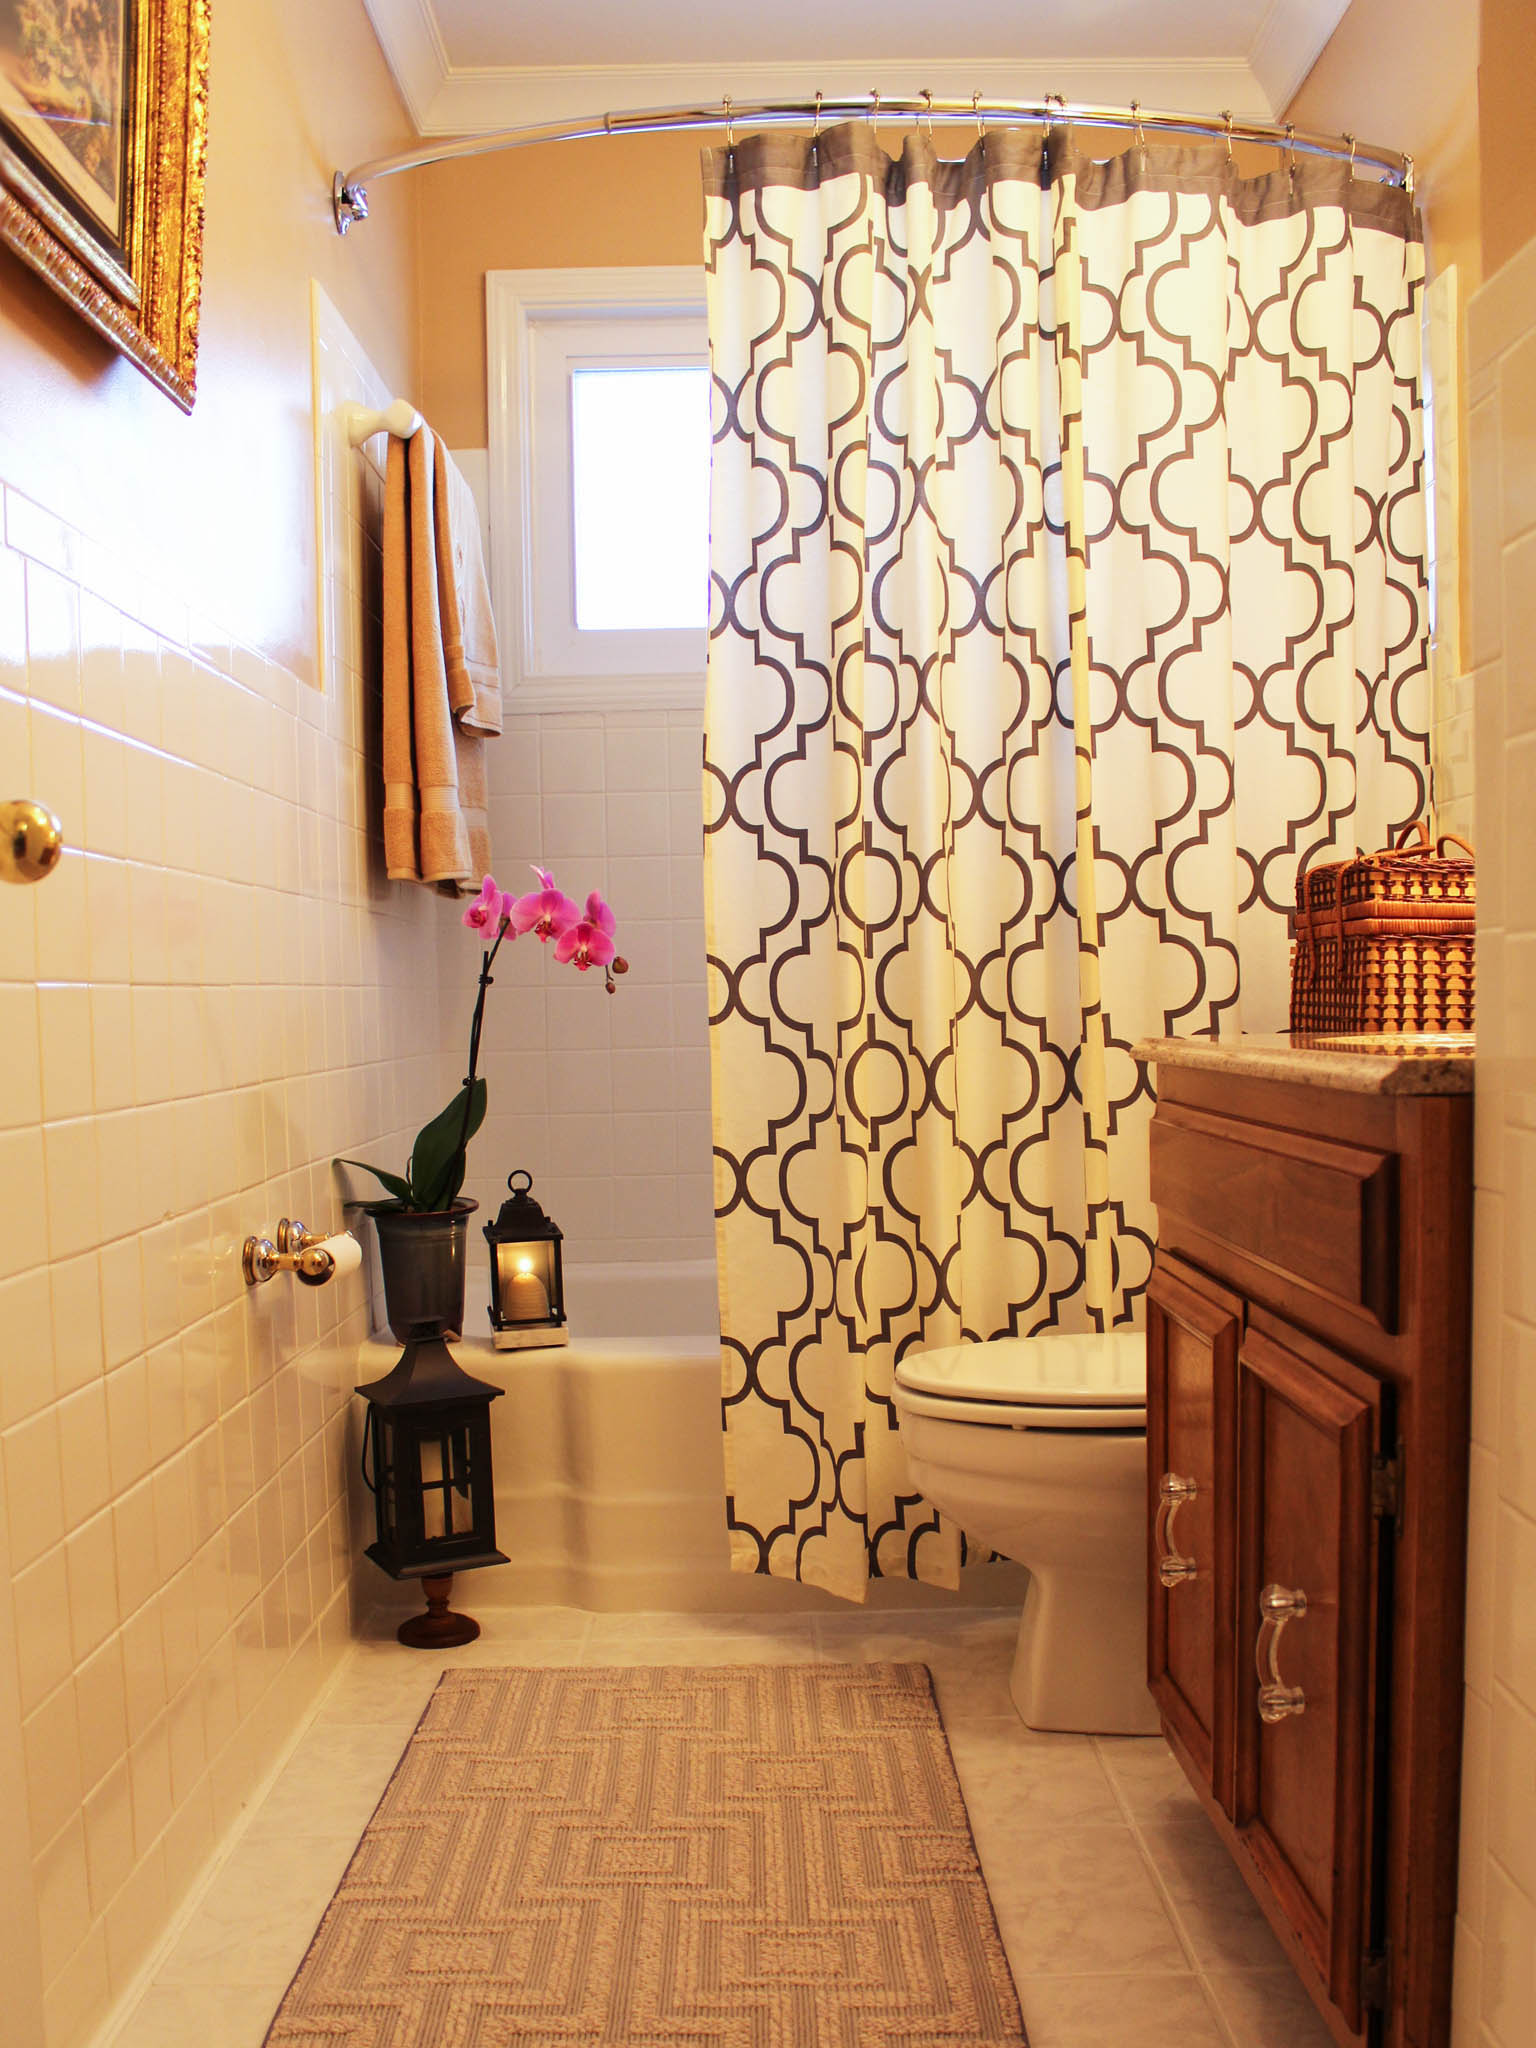 How To Save Money On A Bathroom Remodel Custom Home Design - How to save money on bathroom remodel